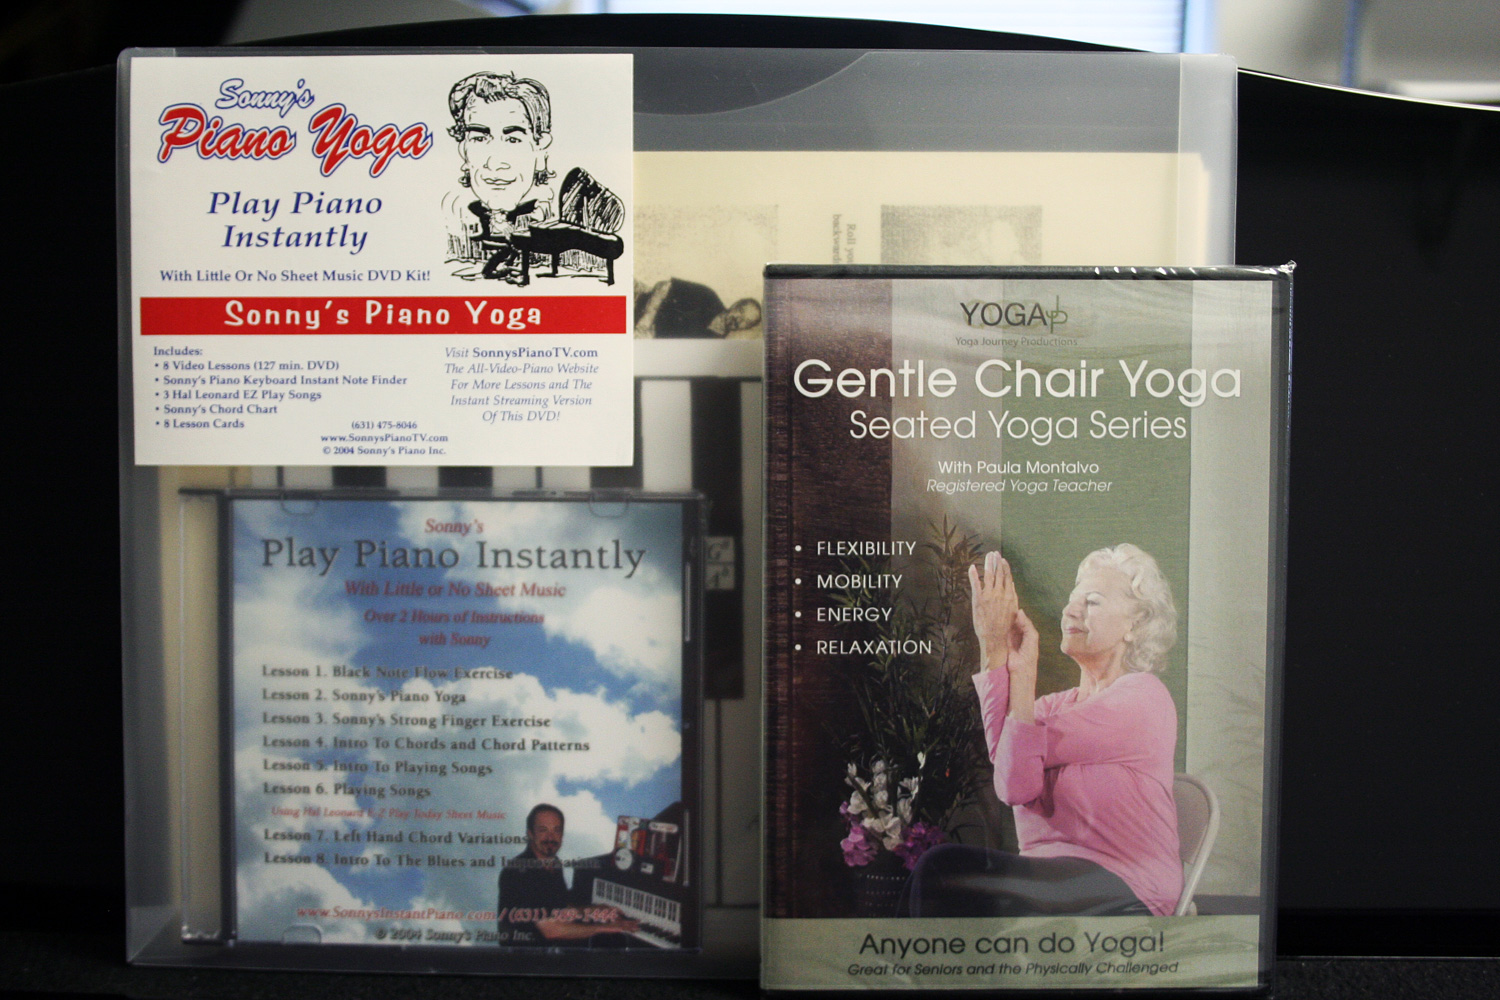 Piano Yoga Dvd Kit By Sonny And Chair Yoga Dvd With Paula Montalvo